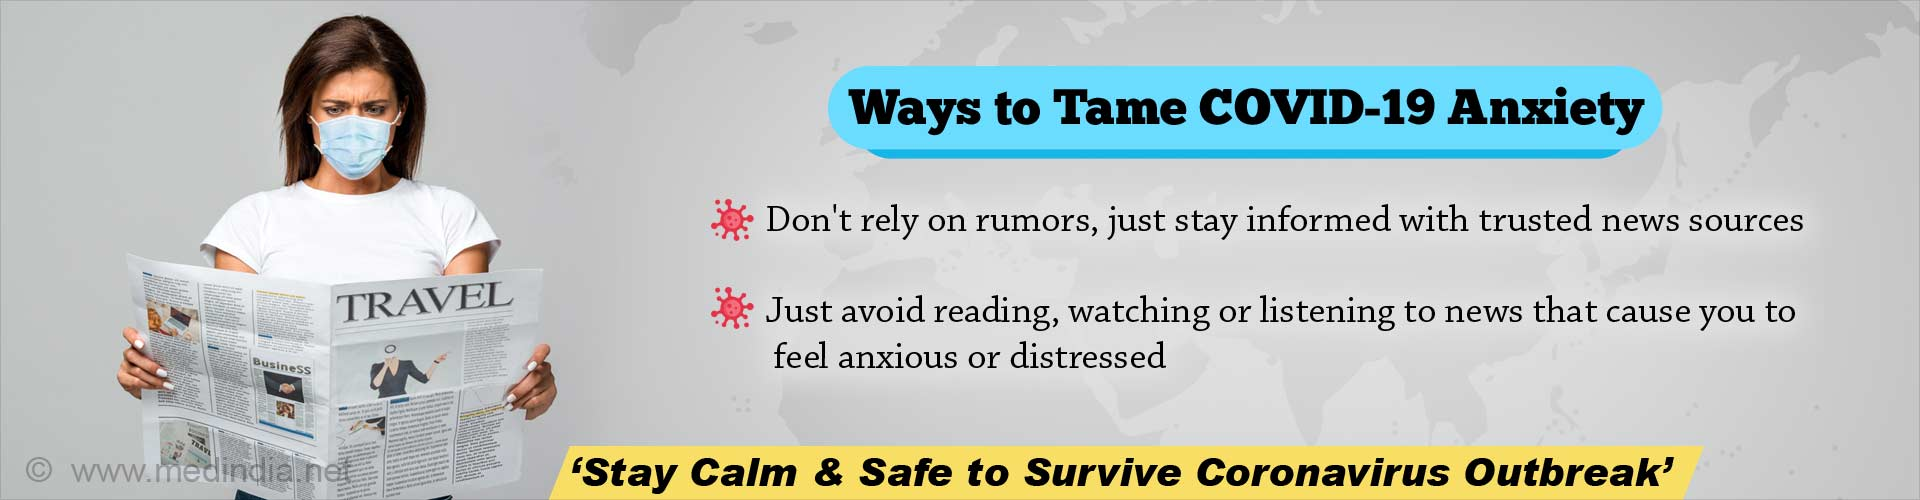 Simple 5 Ways to Fight Anxiety during COVID-19 Outbreak